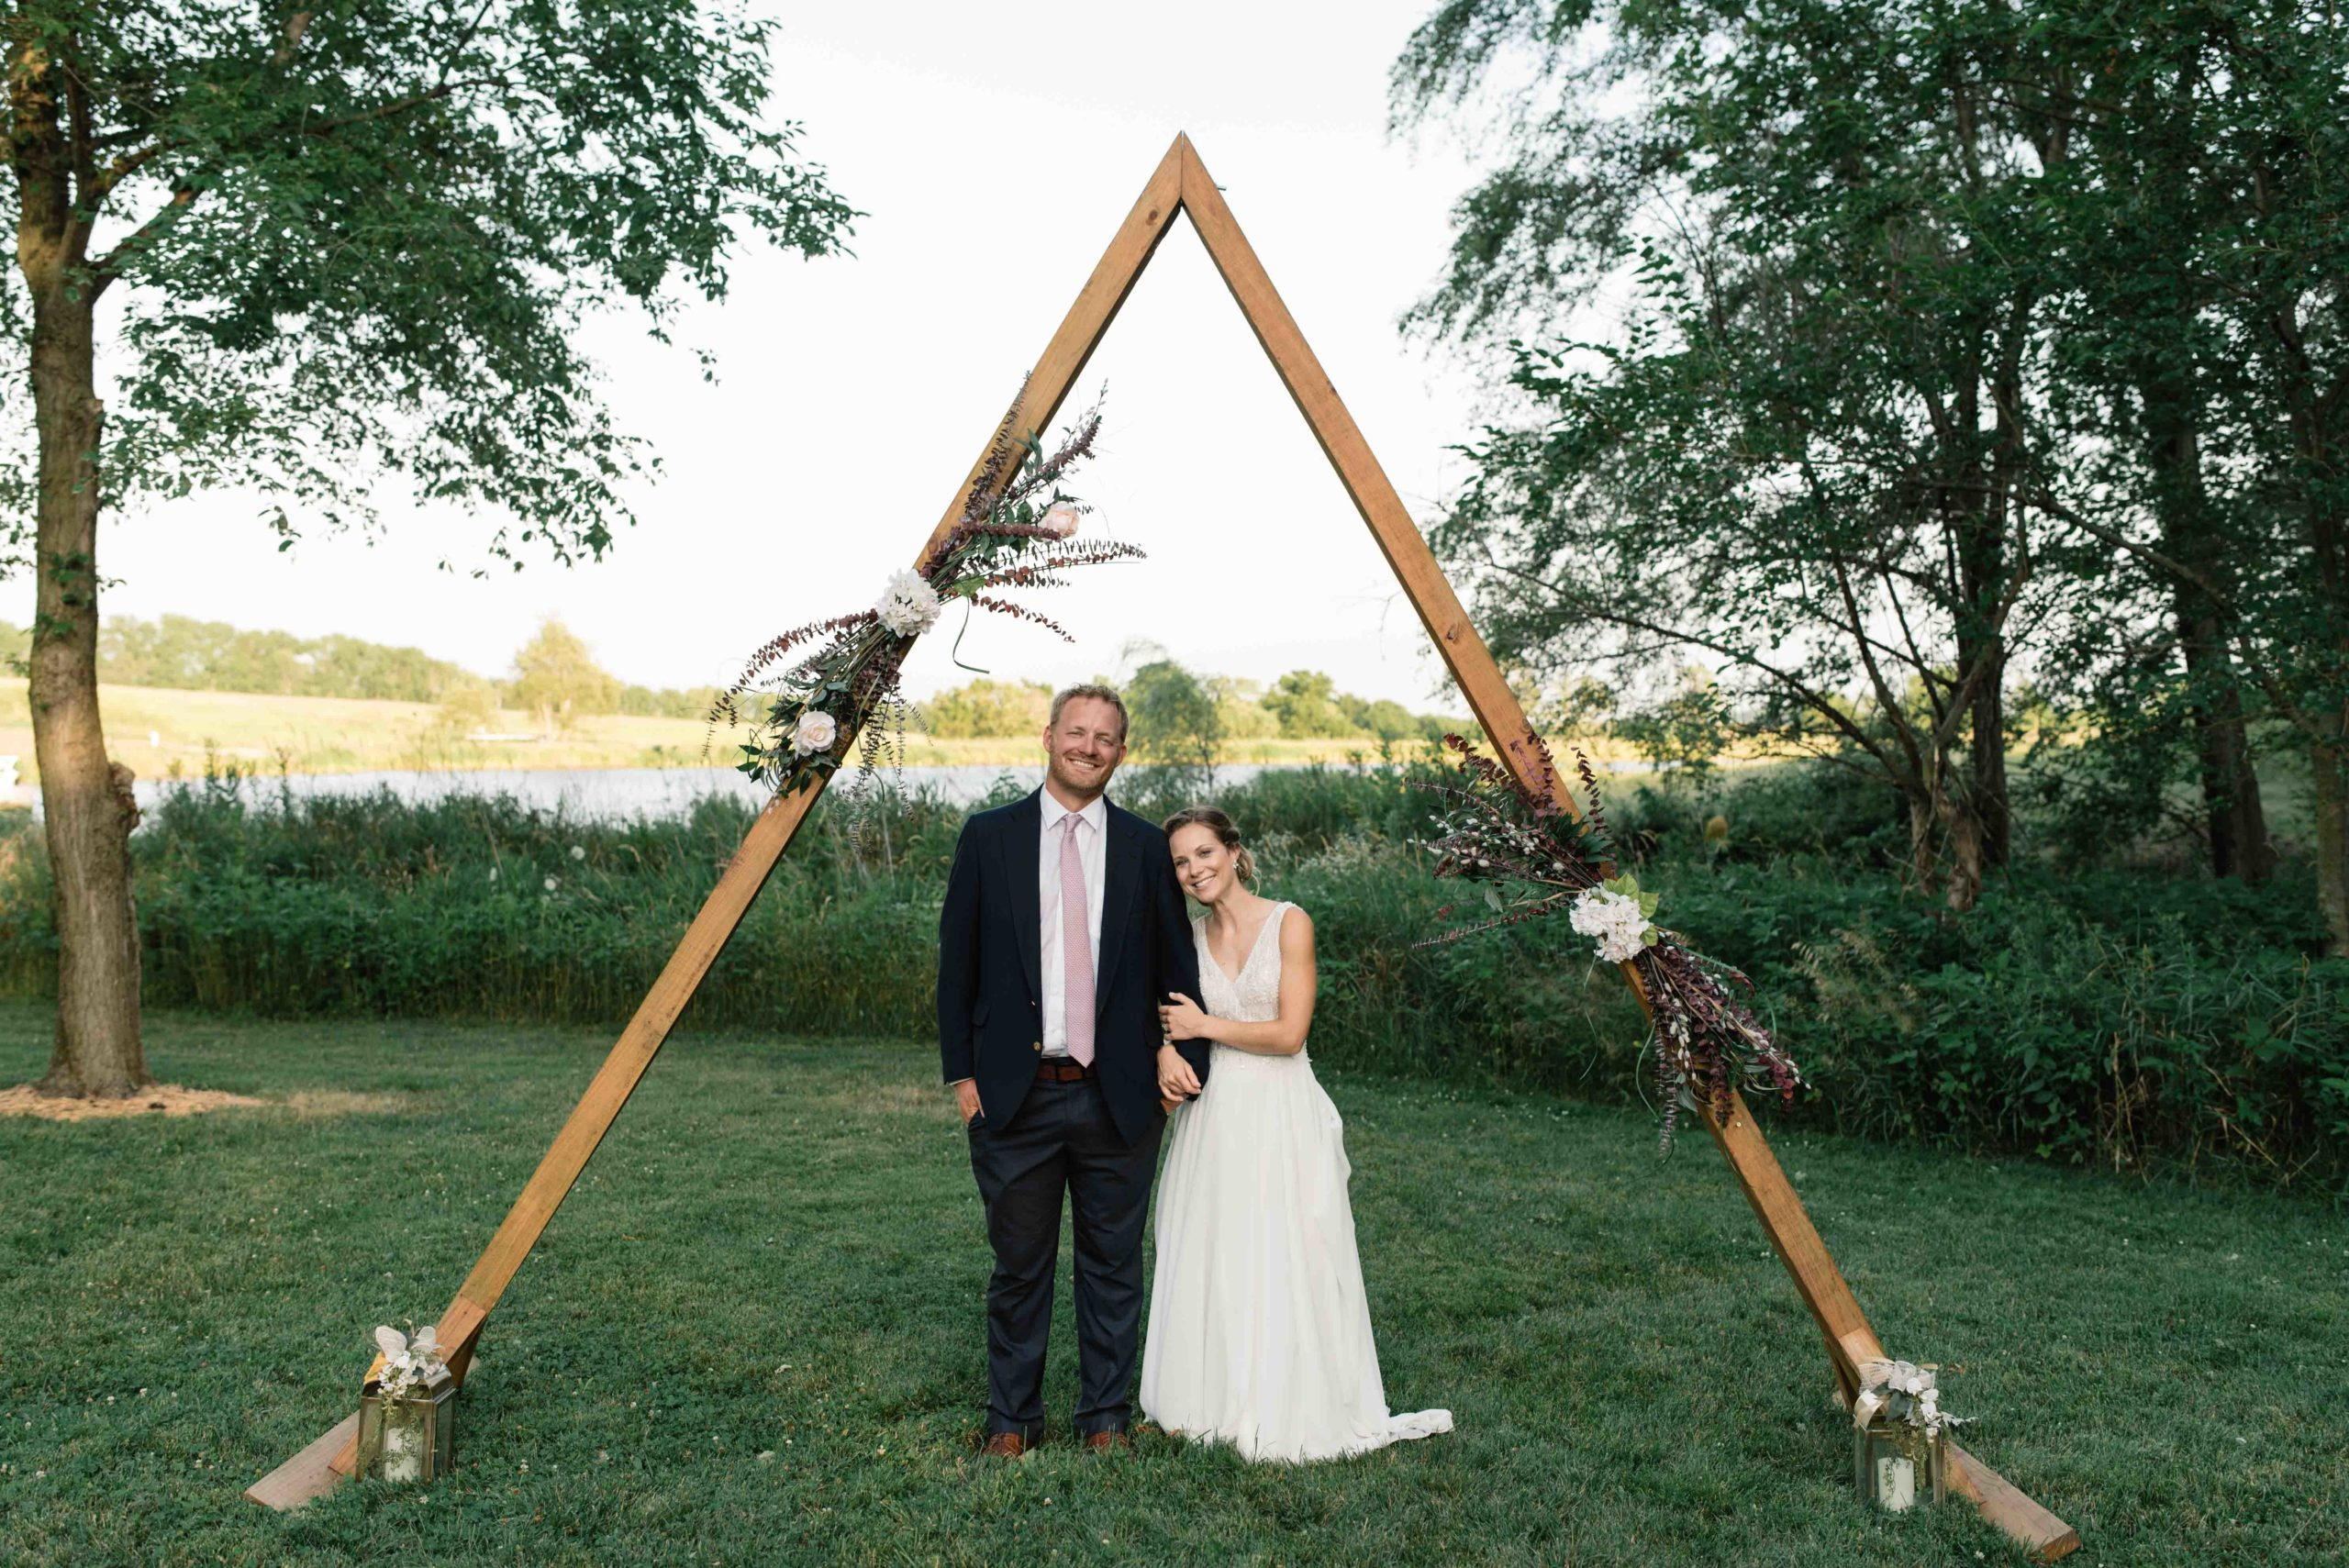 bride and groom snuggle under wooden triangle wedding ceremony arch schafer century barn wedding venue